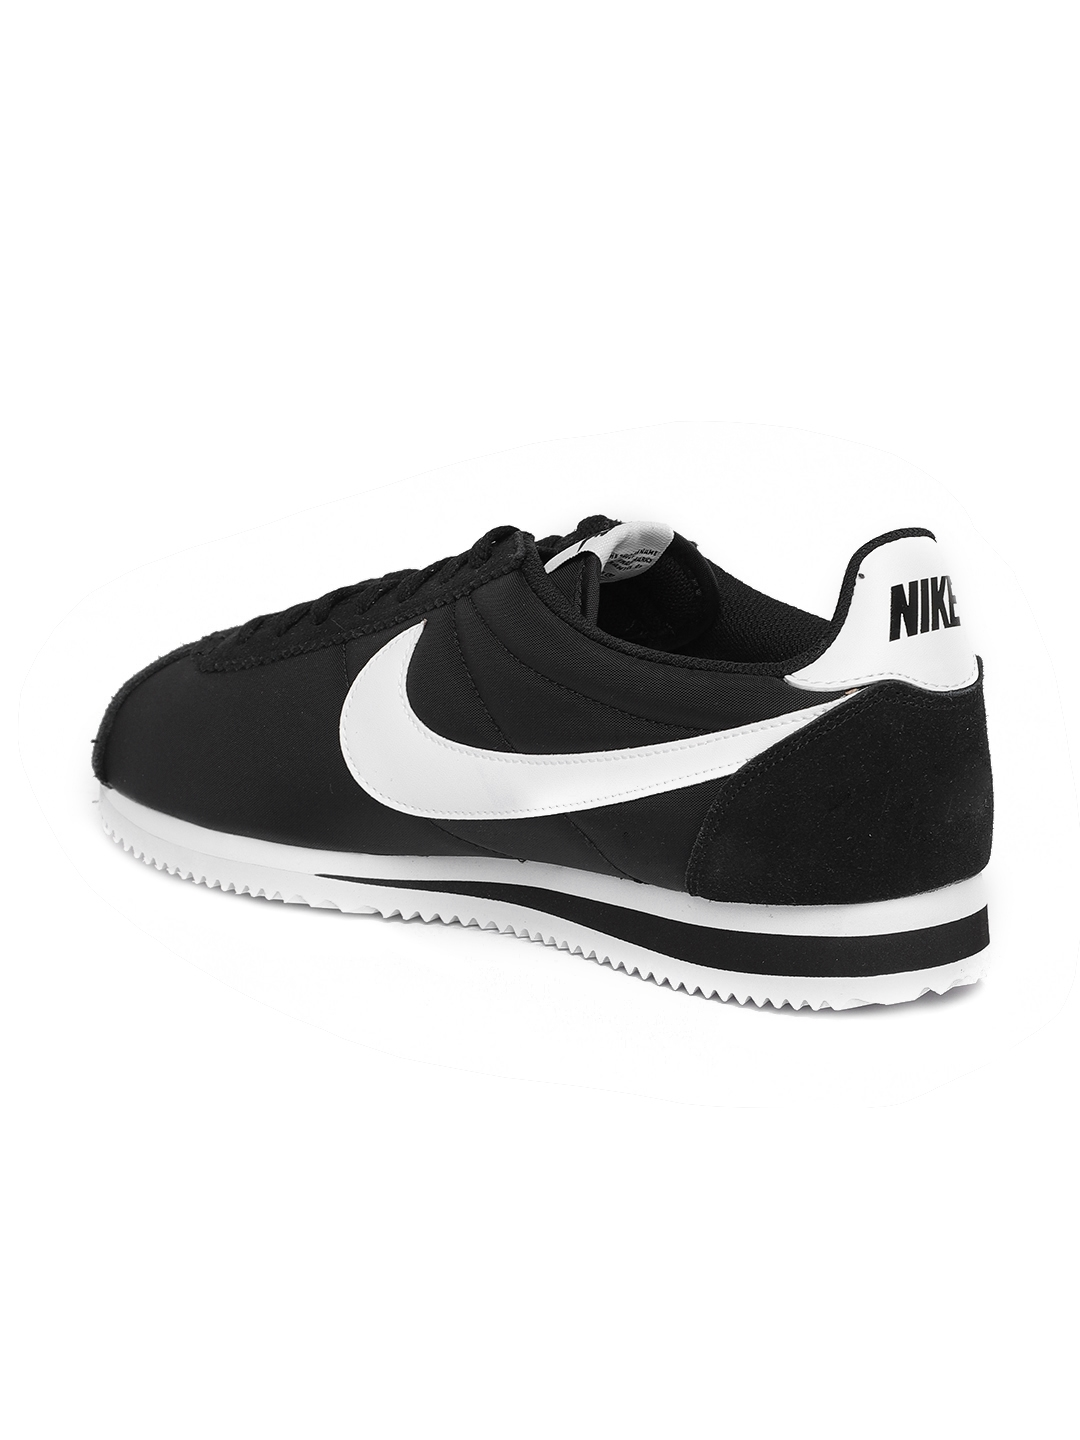 uk availability 9d61a 97e54 Nike Men Black Classic Cortez Sneakers